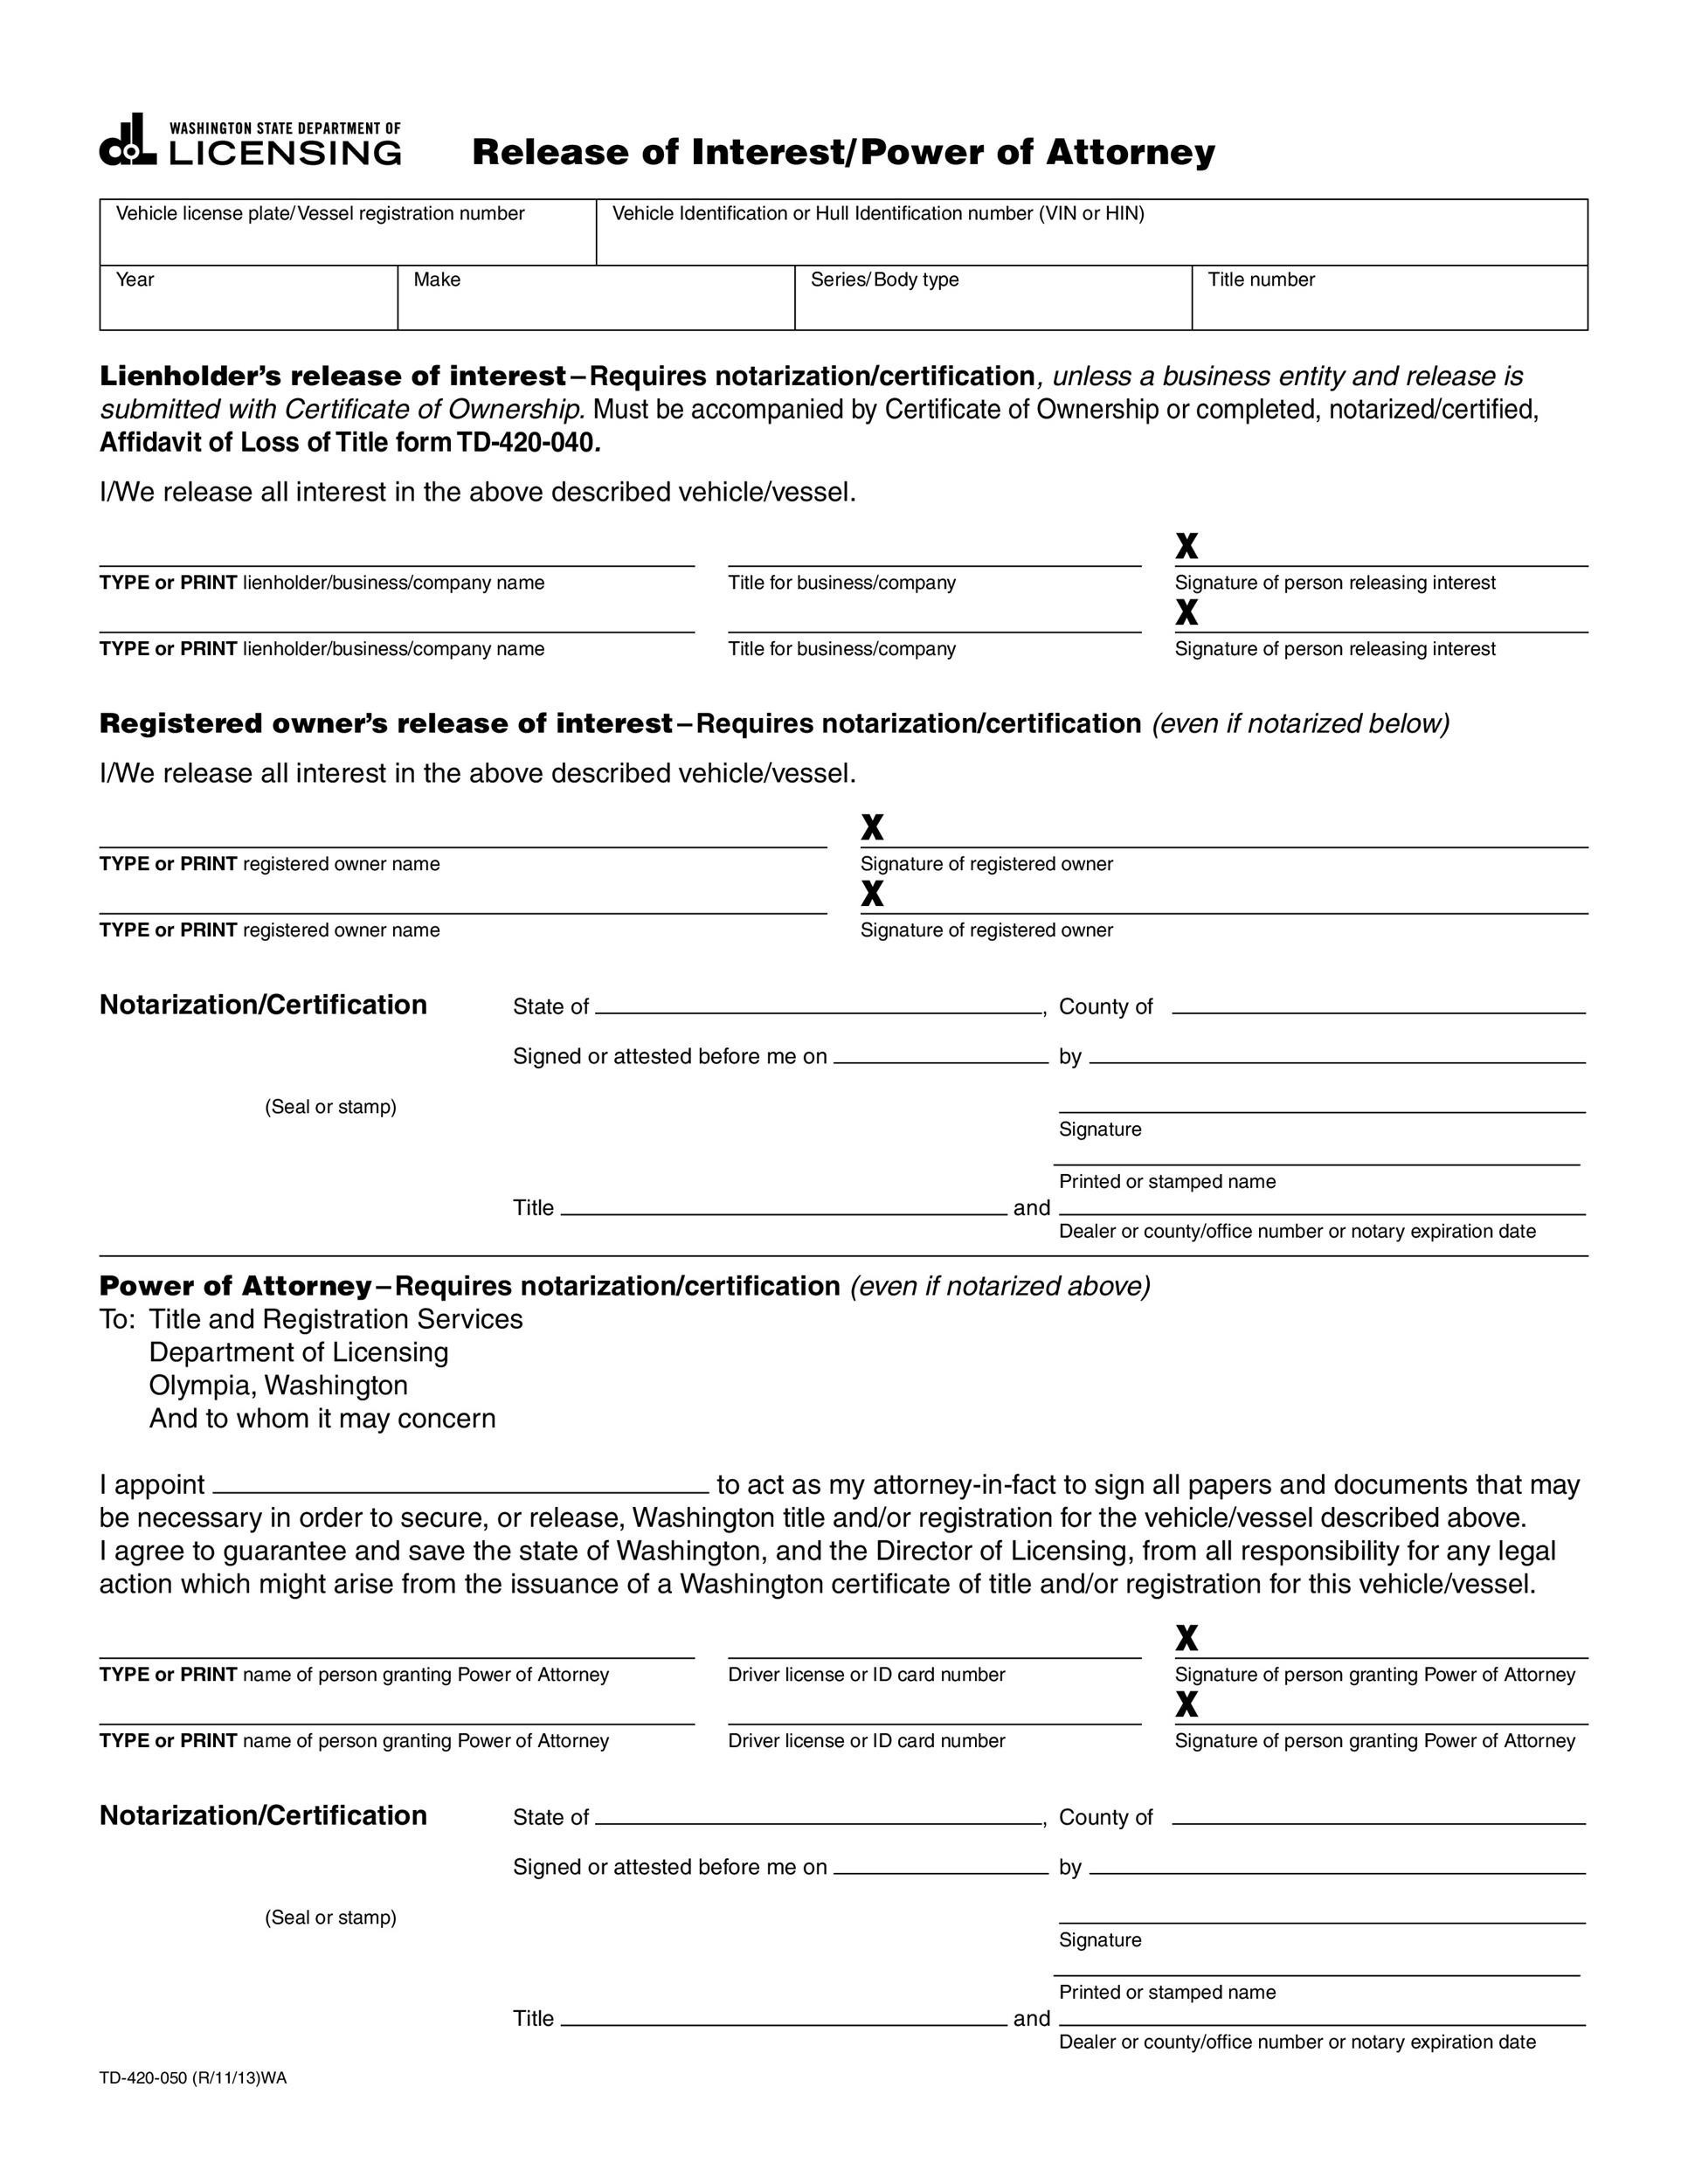 50 free power of attorney forms templates durable for Corporate power of attorney template